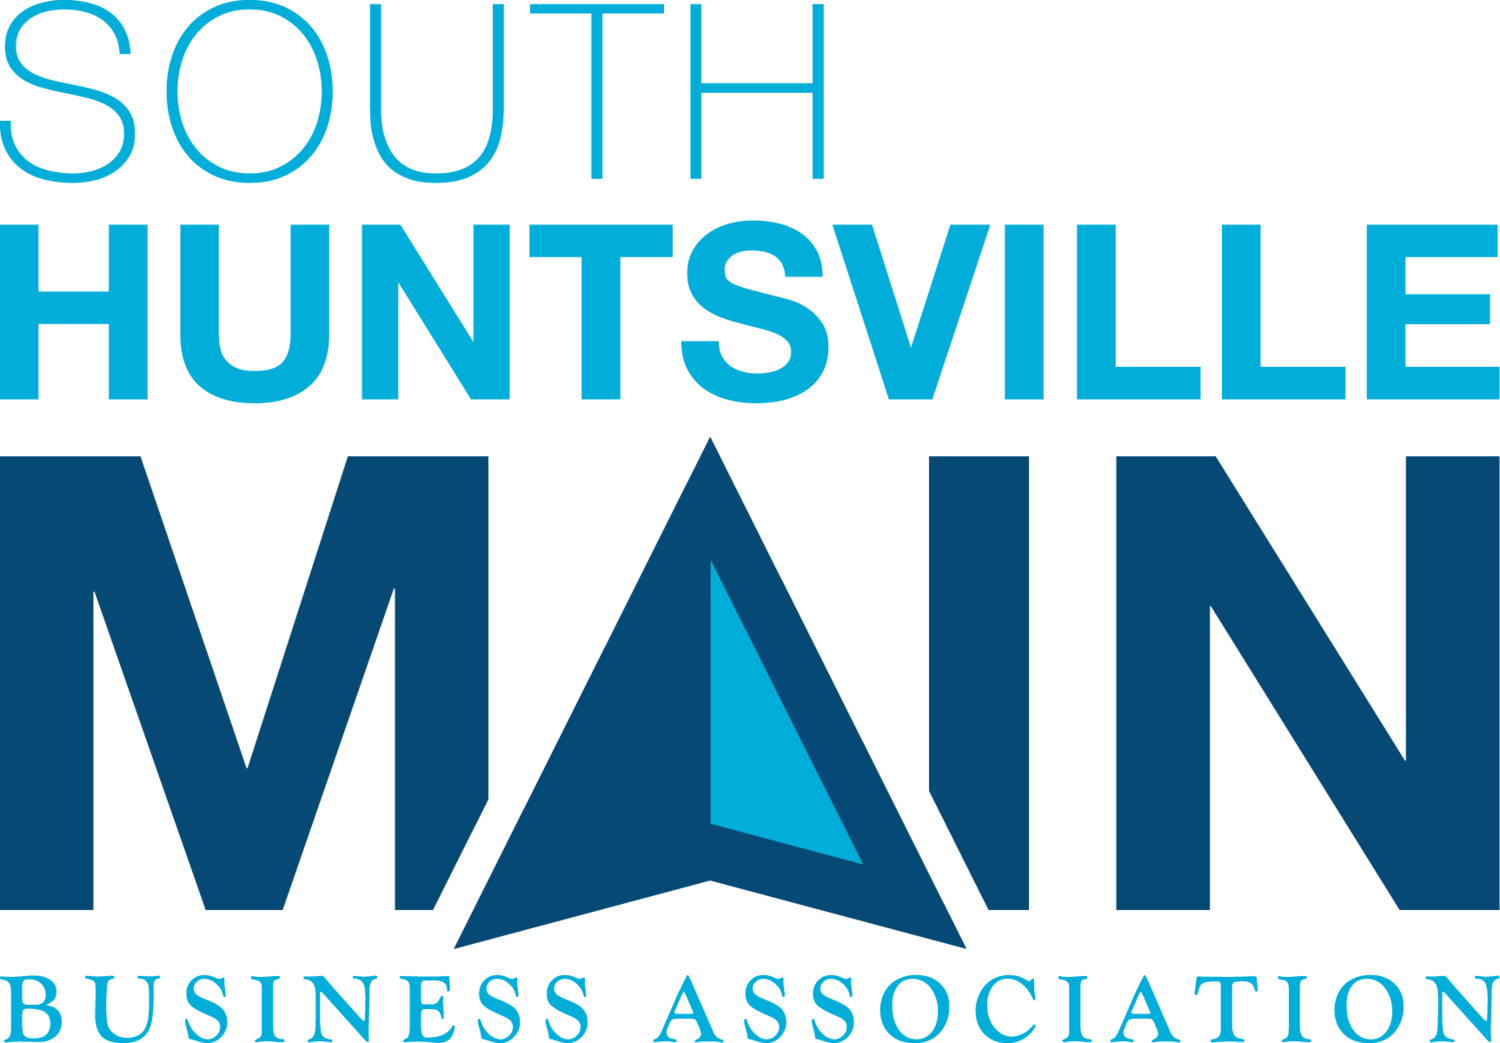 South Huntsville Main Business Association.